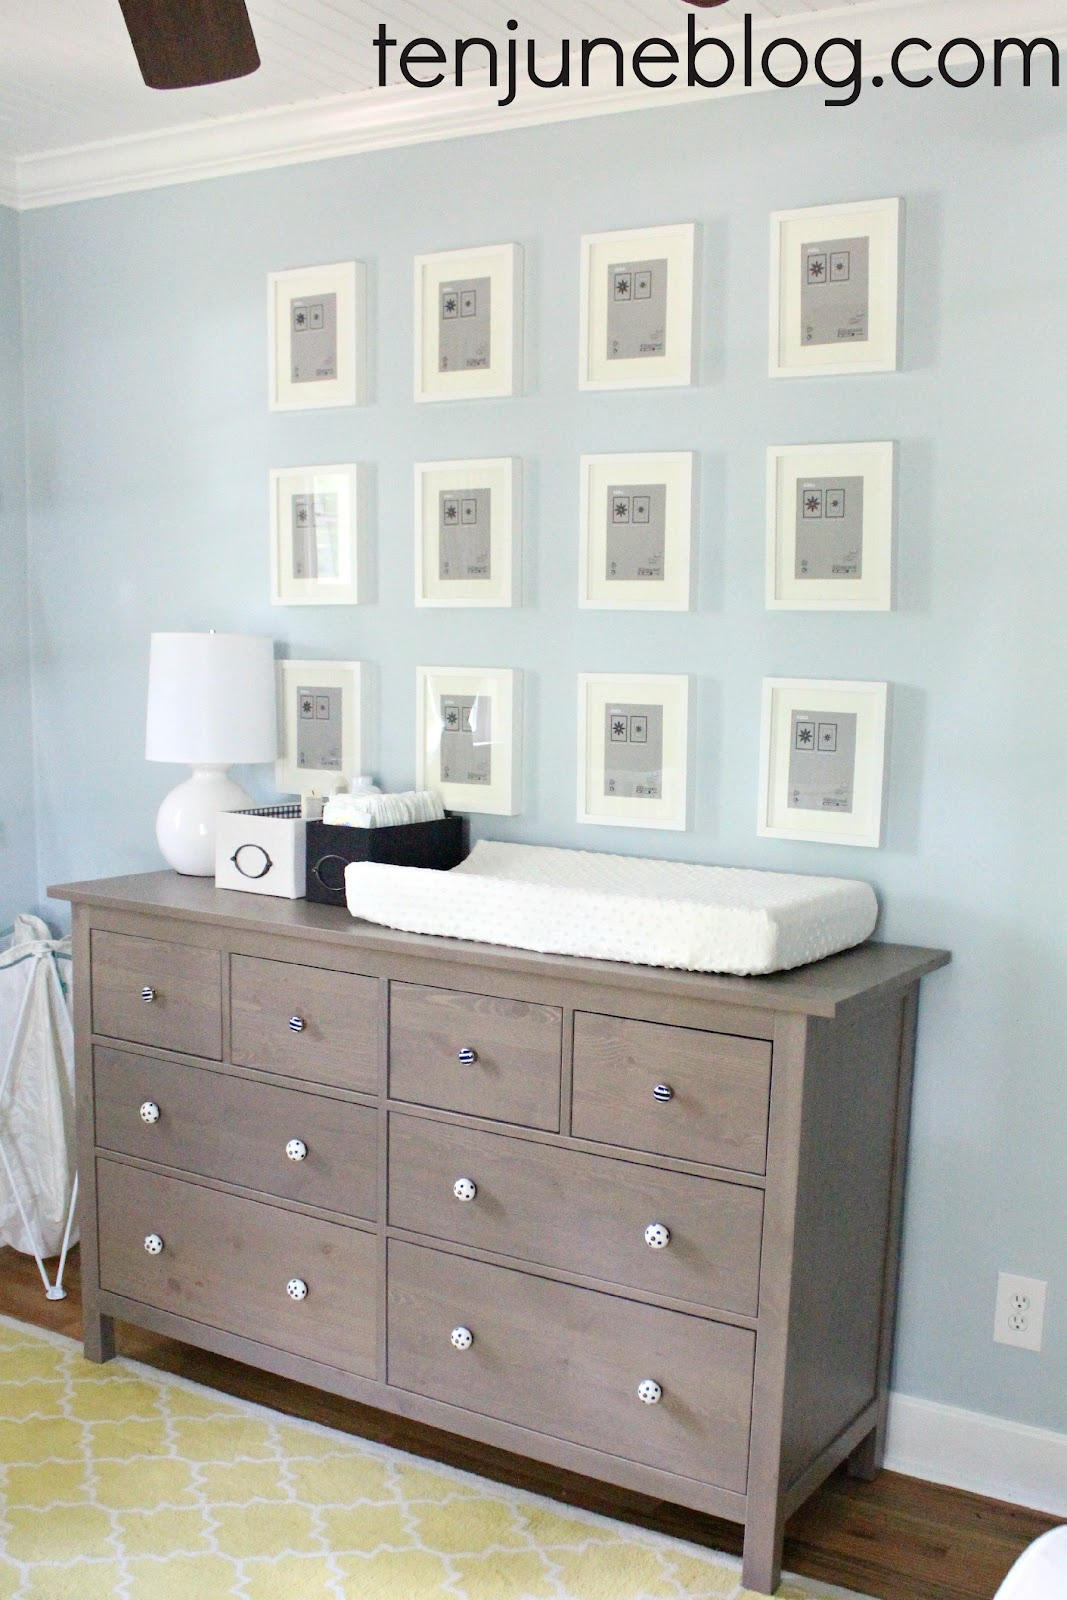 Nursery Update Ikea Dresser Turned Changing Table Station Land Of Nod Gumball Lamps